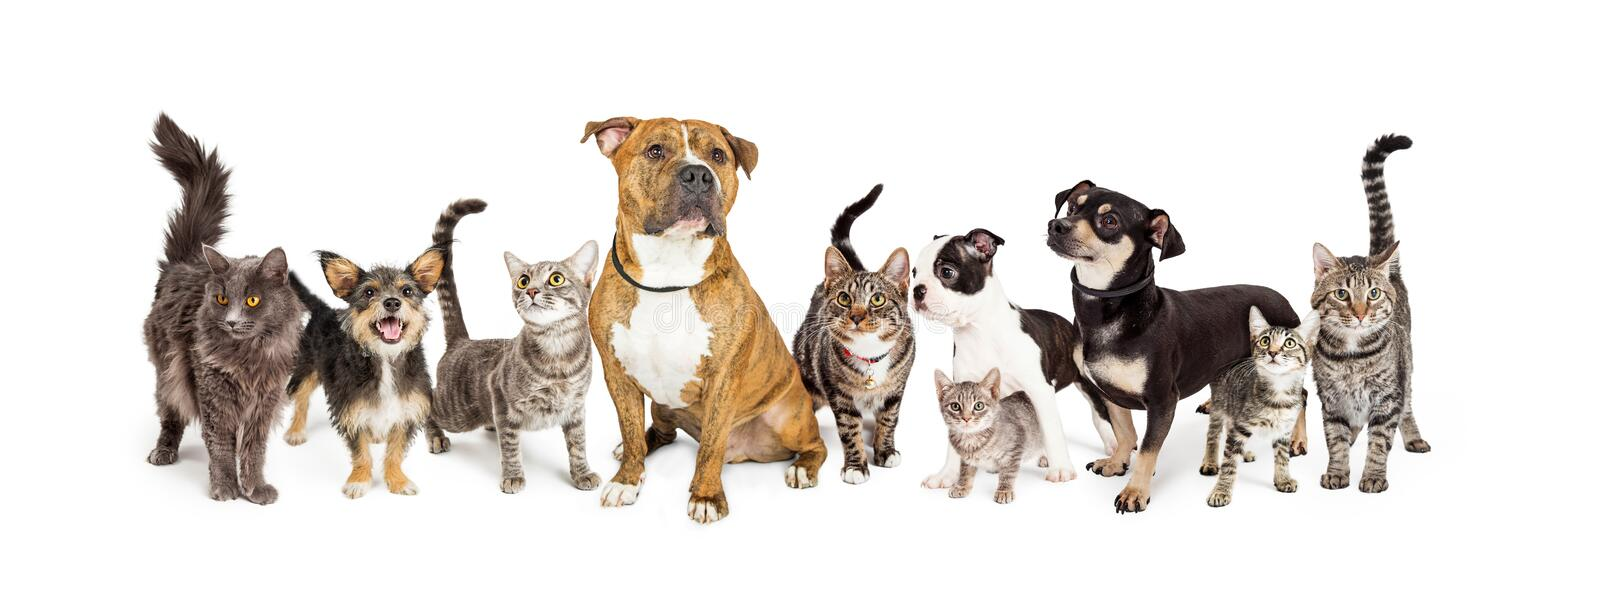 Row of Cats and Dogs Together on White. Row of different size and breeds of cats and dogs together, isolated on a white social media or web banner royalty free stock image